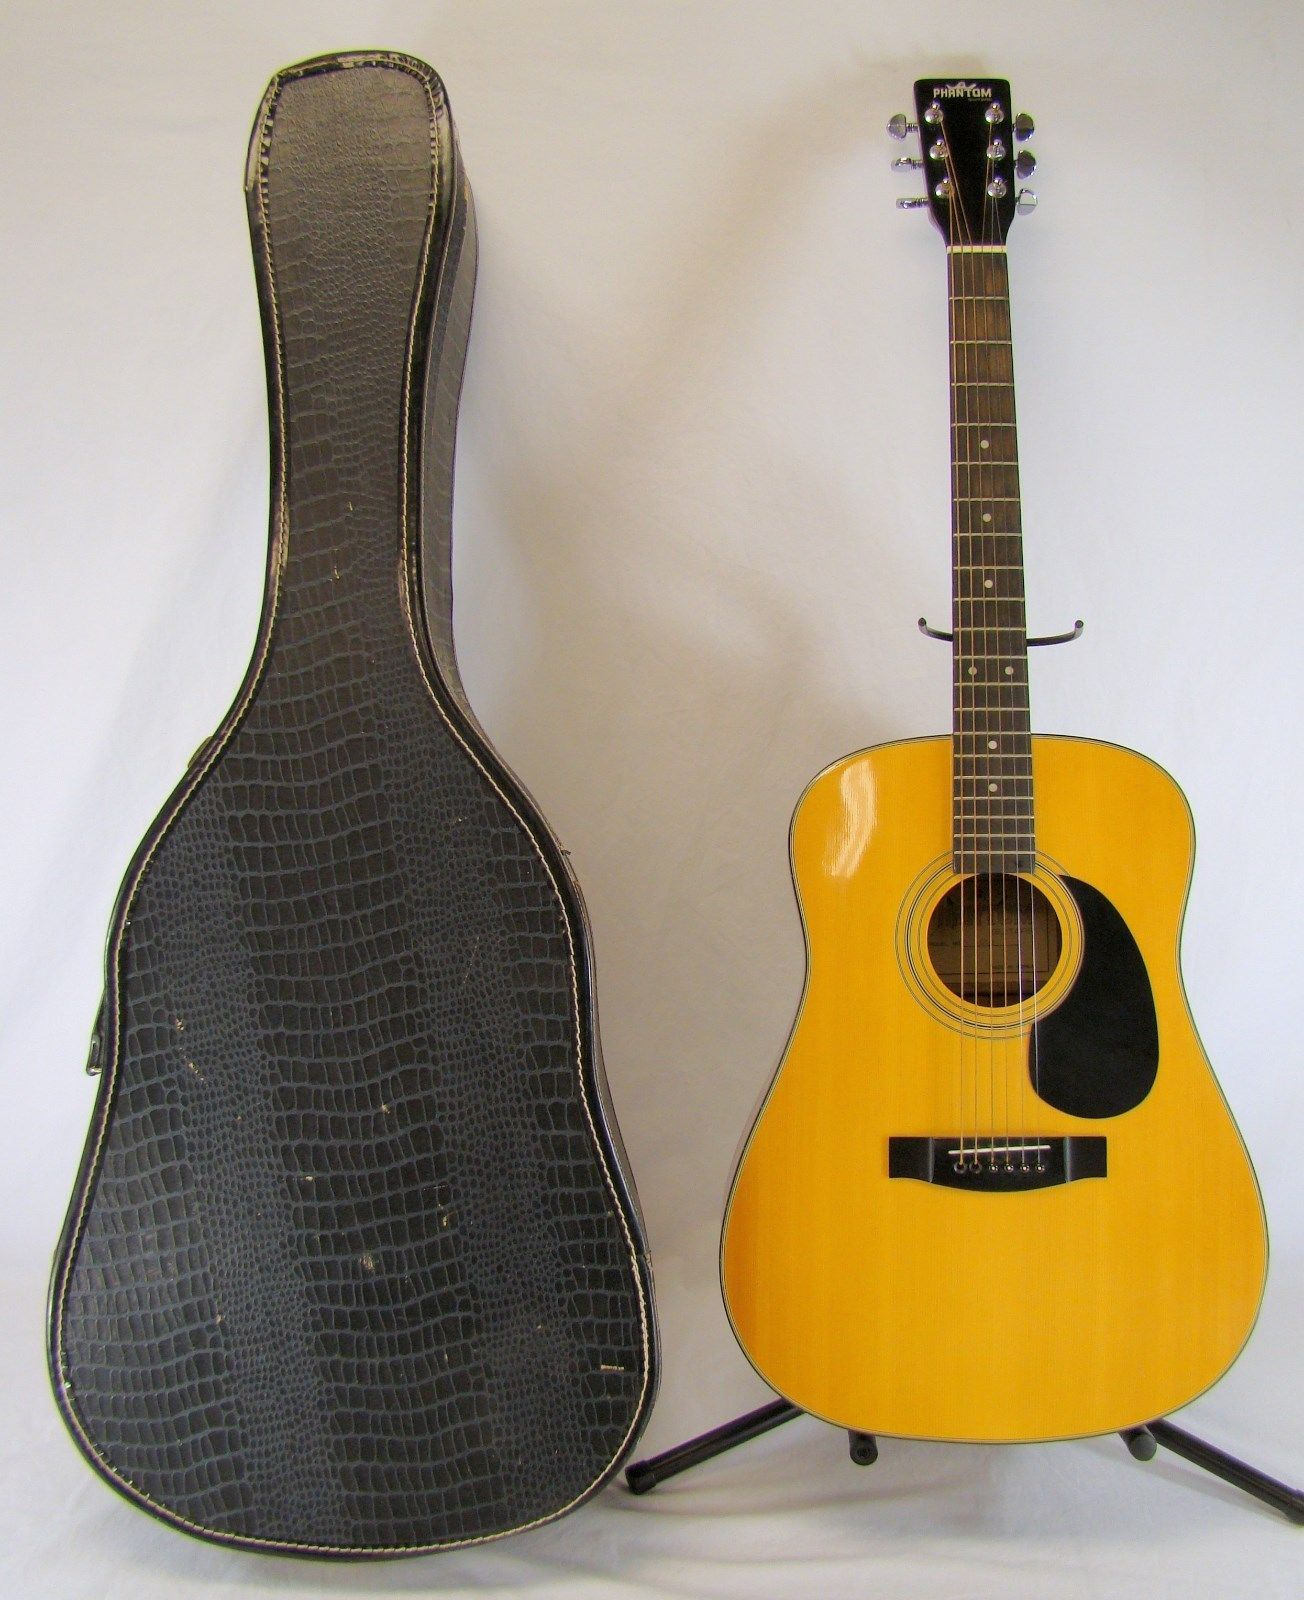 guitar PHANTOM MODEL DA1 ACOUSTIC GUITAR WITH GROVER TUNERS AND HARD CASE please retweet